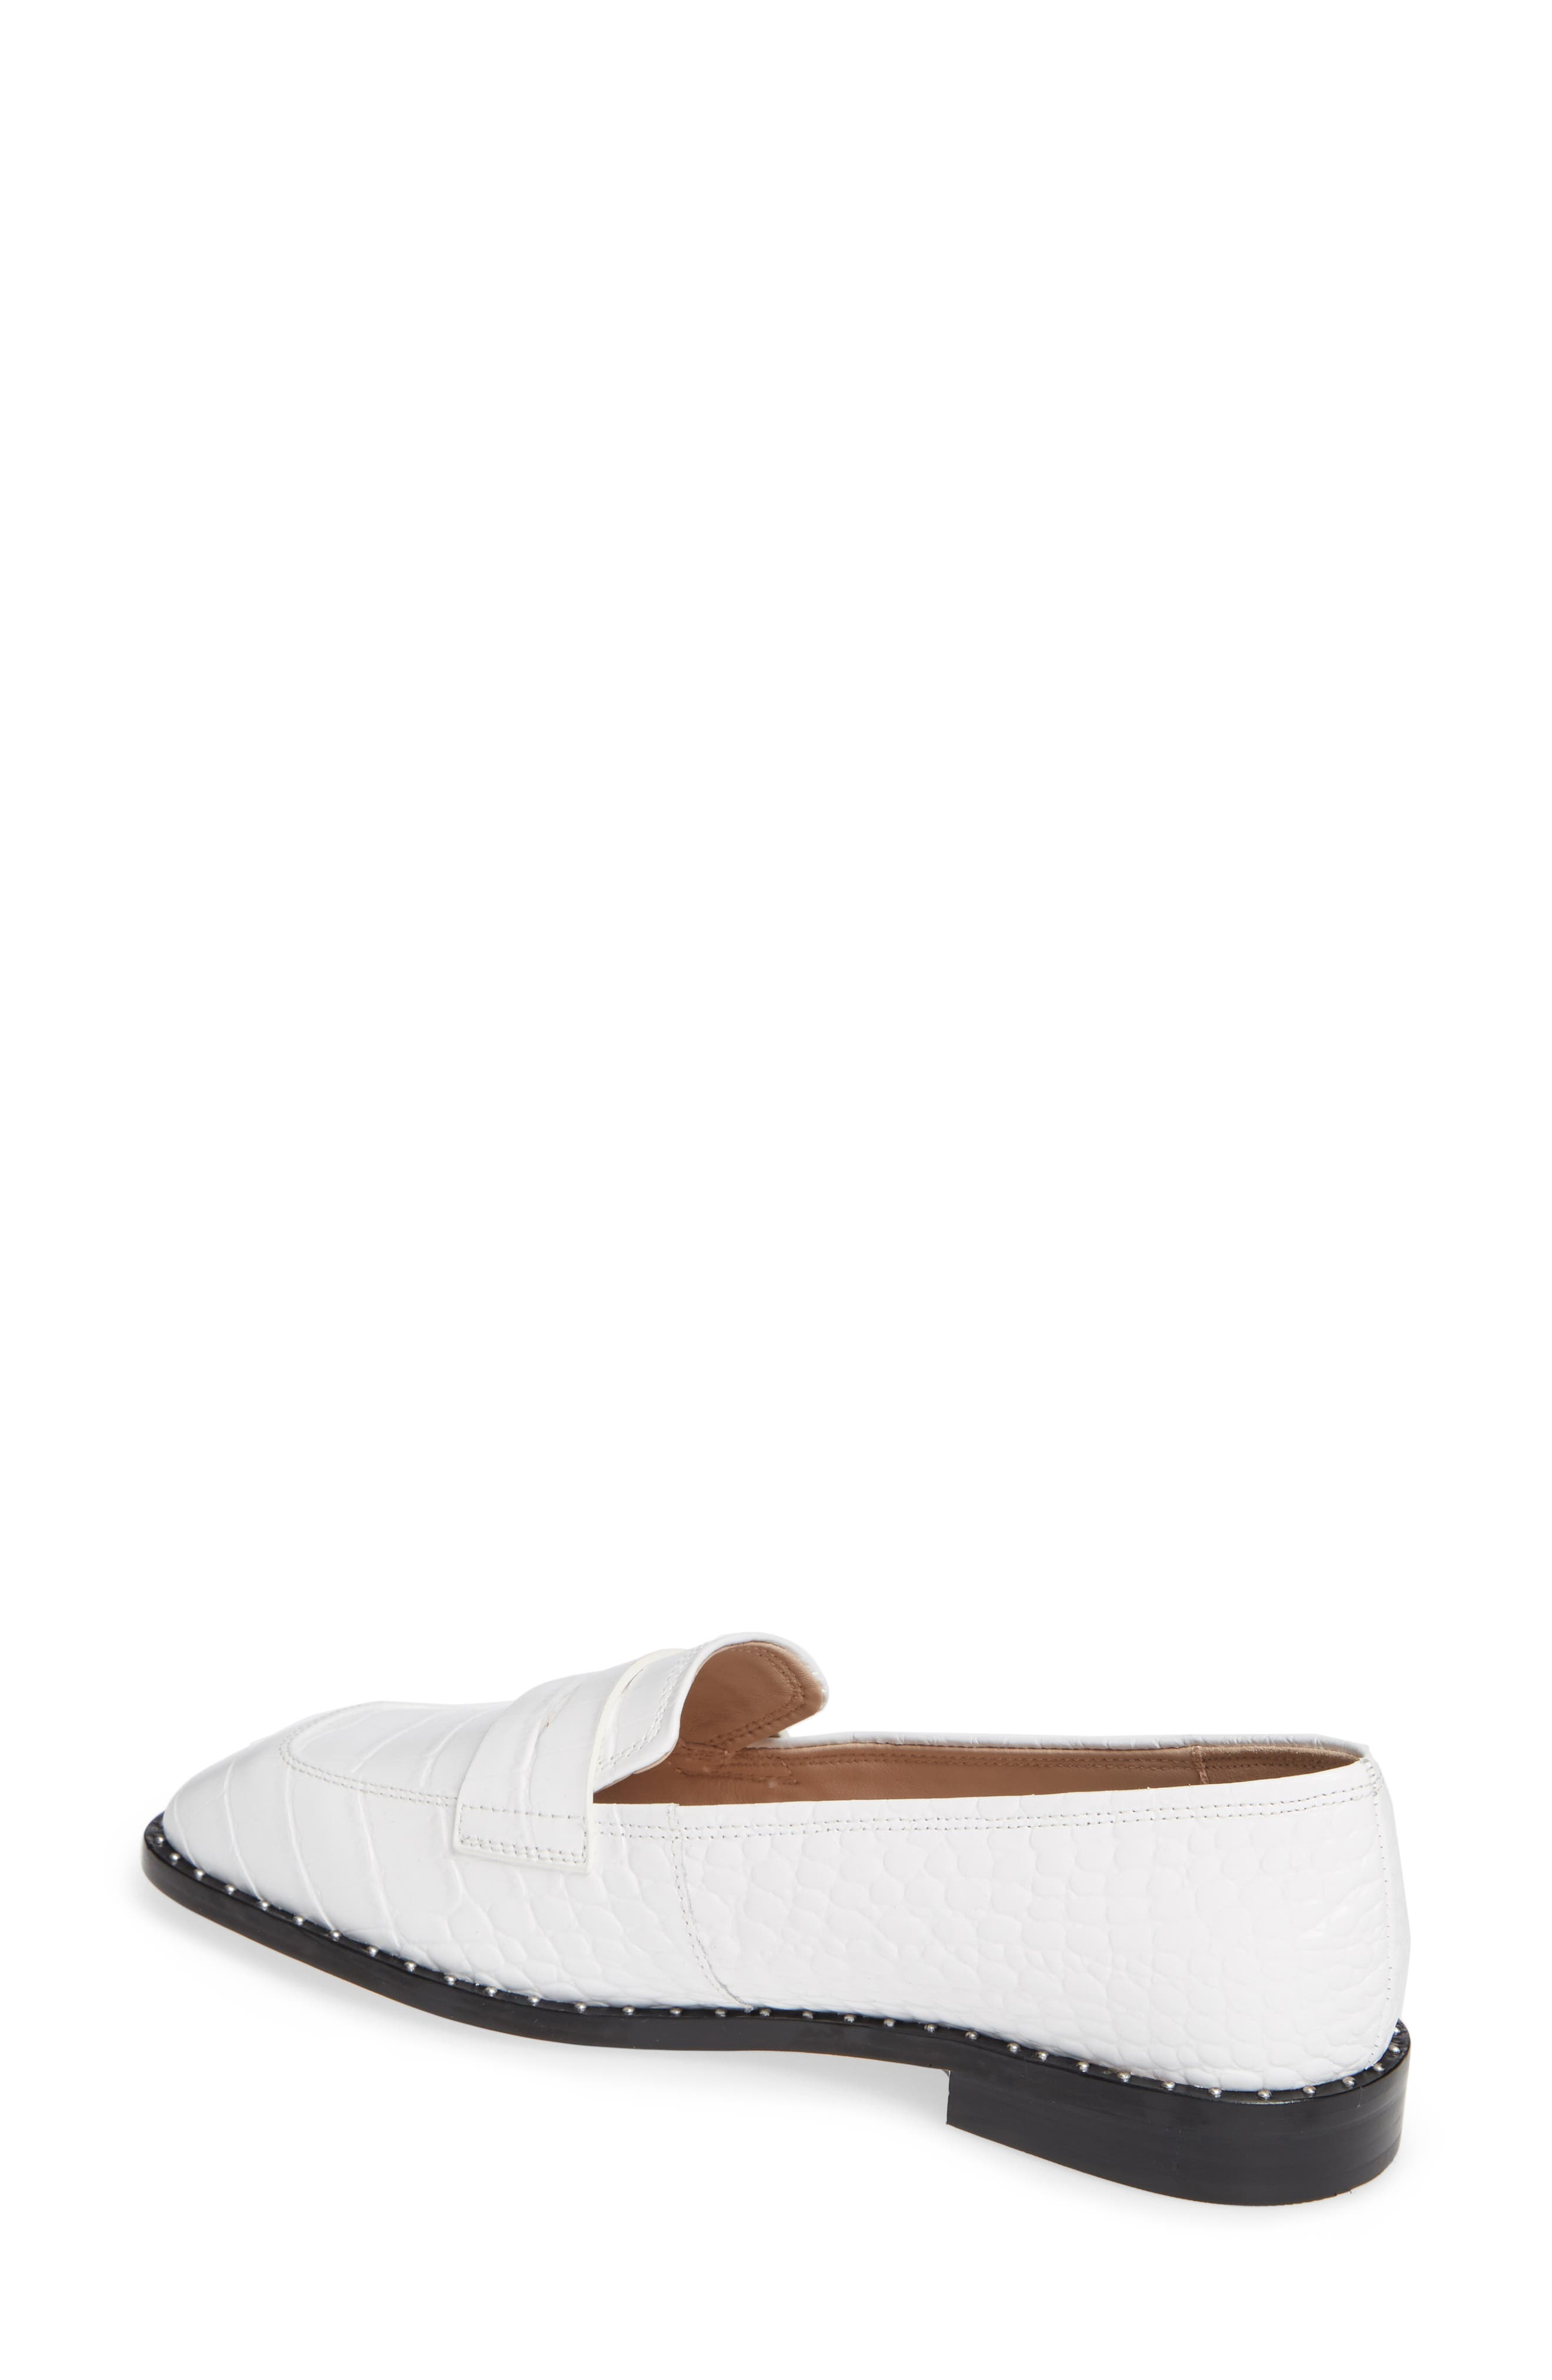 Amado Loafer,                             Alternate thumbnail 2, color,                             WHITE EMBOSSED CROCO LEATHER